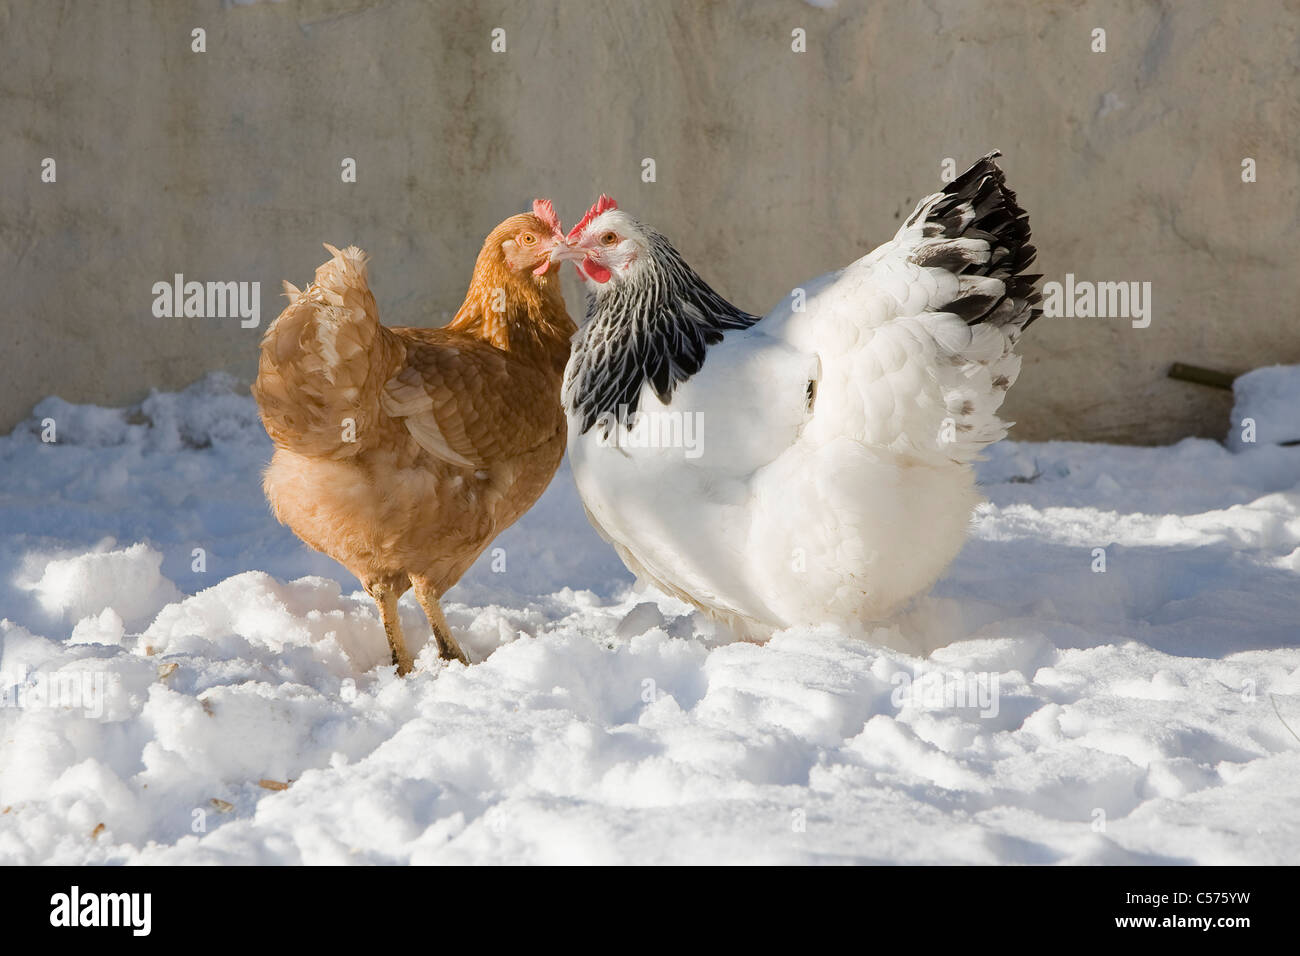 Two hens in snow - Stock Image